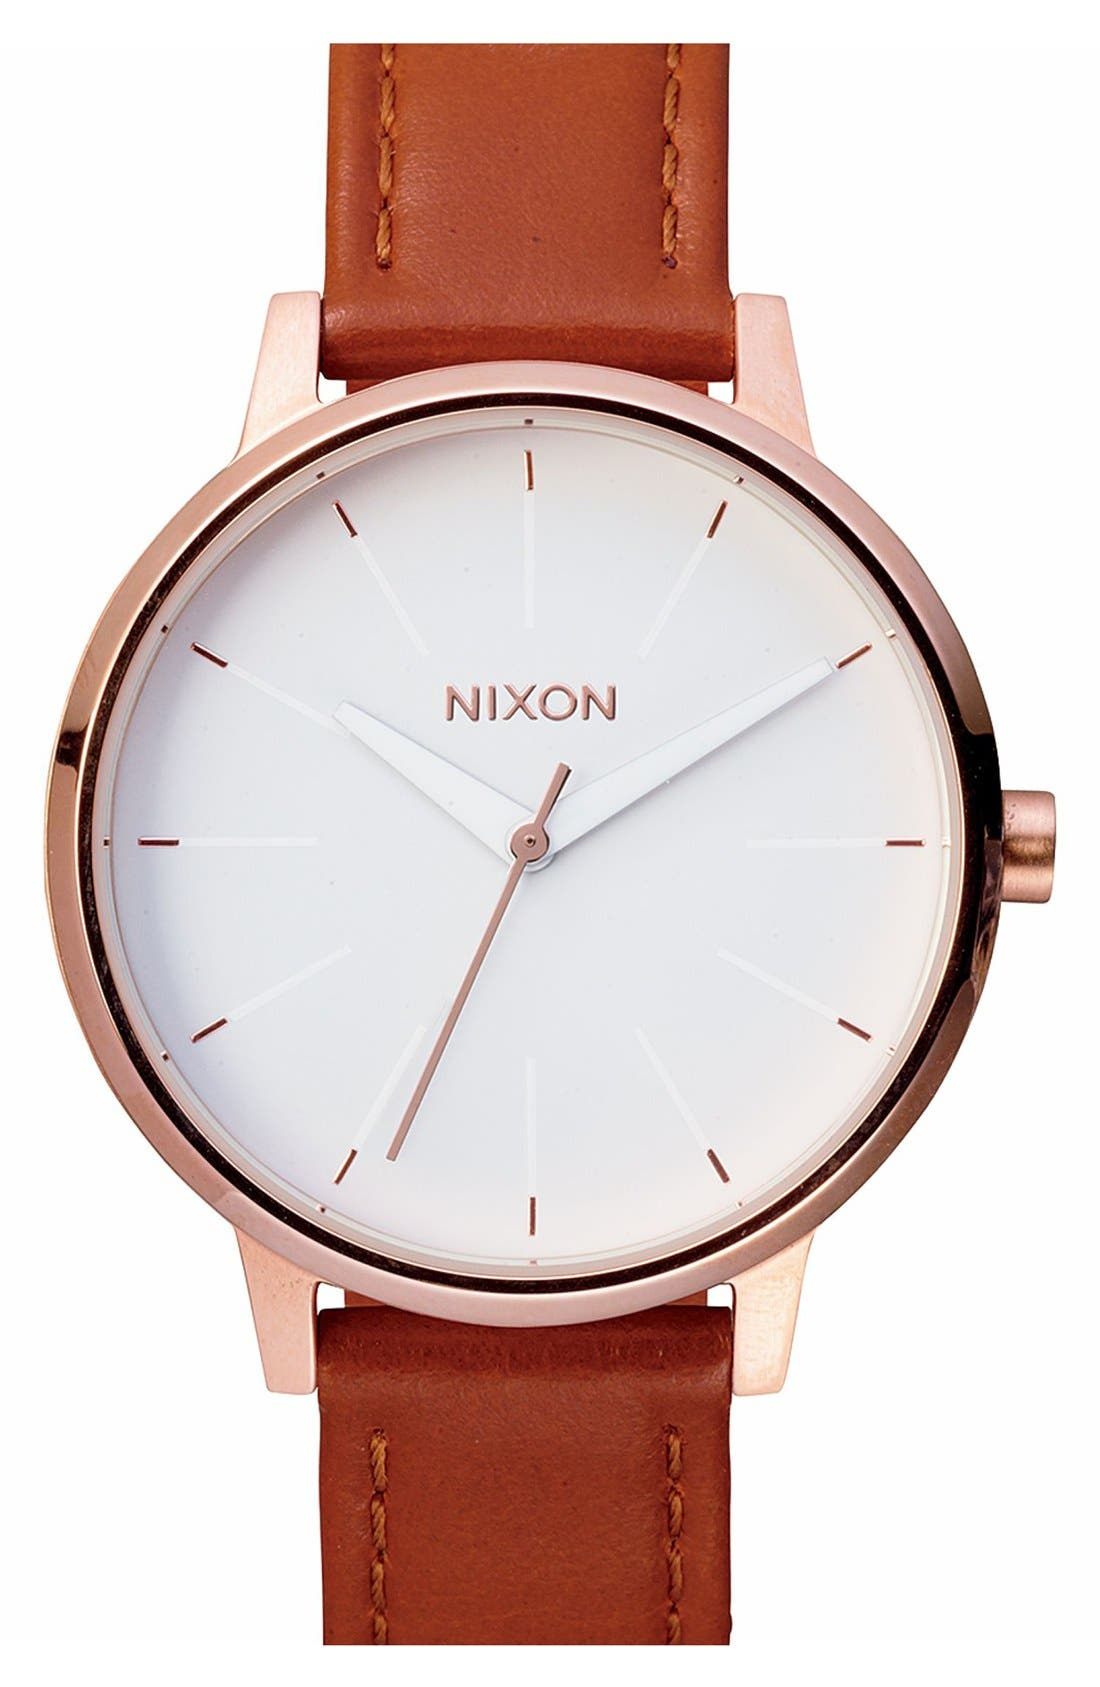 NIXON 'The Kensington' Leather Strap Watch, 37mm, Main, color, BROWN/ ROSE GOLD/ WHITE